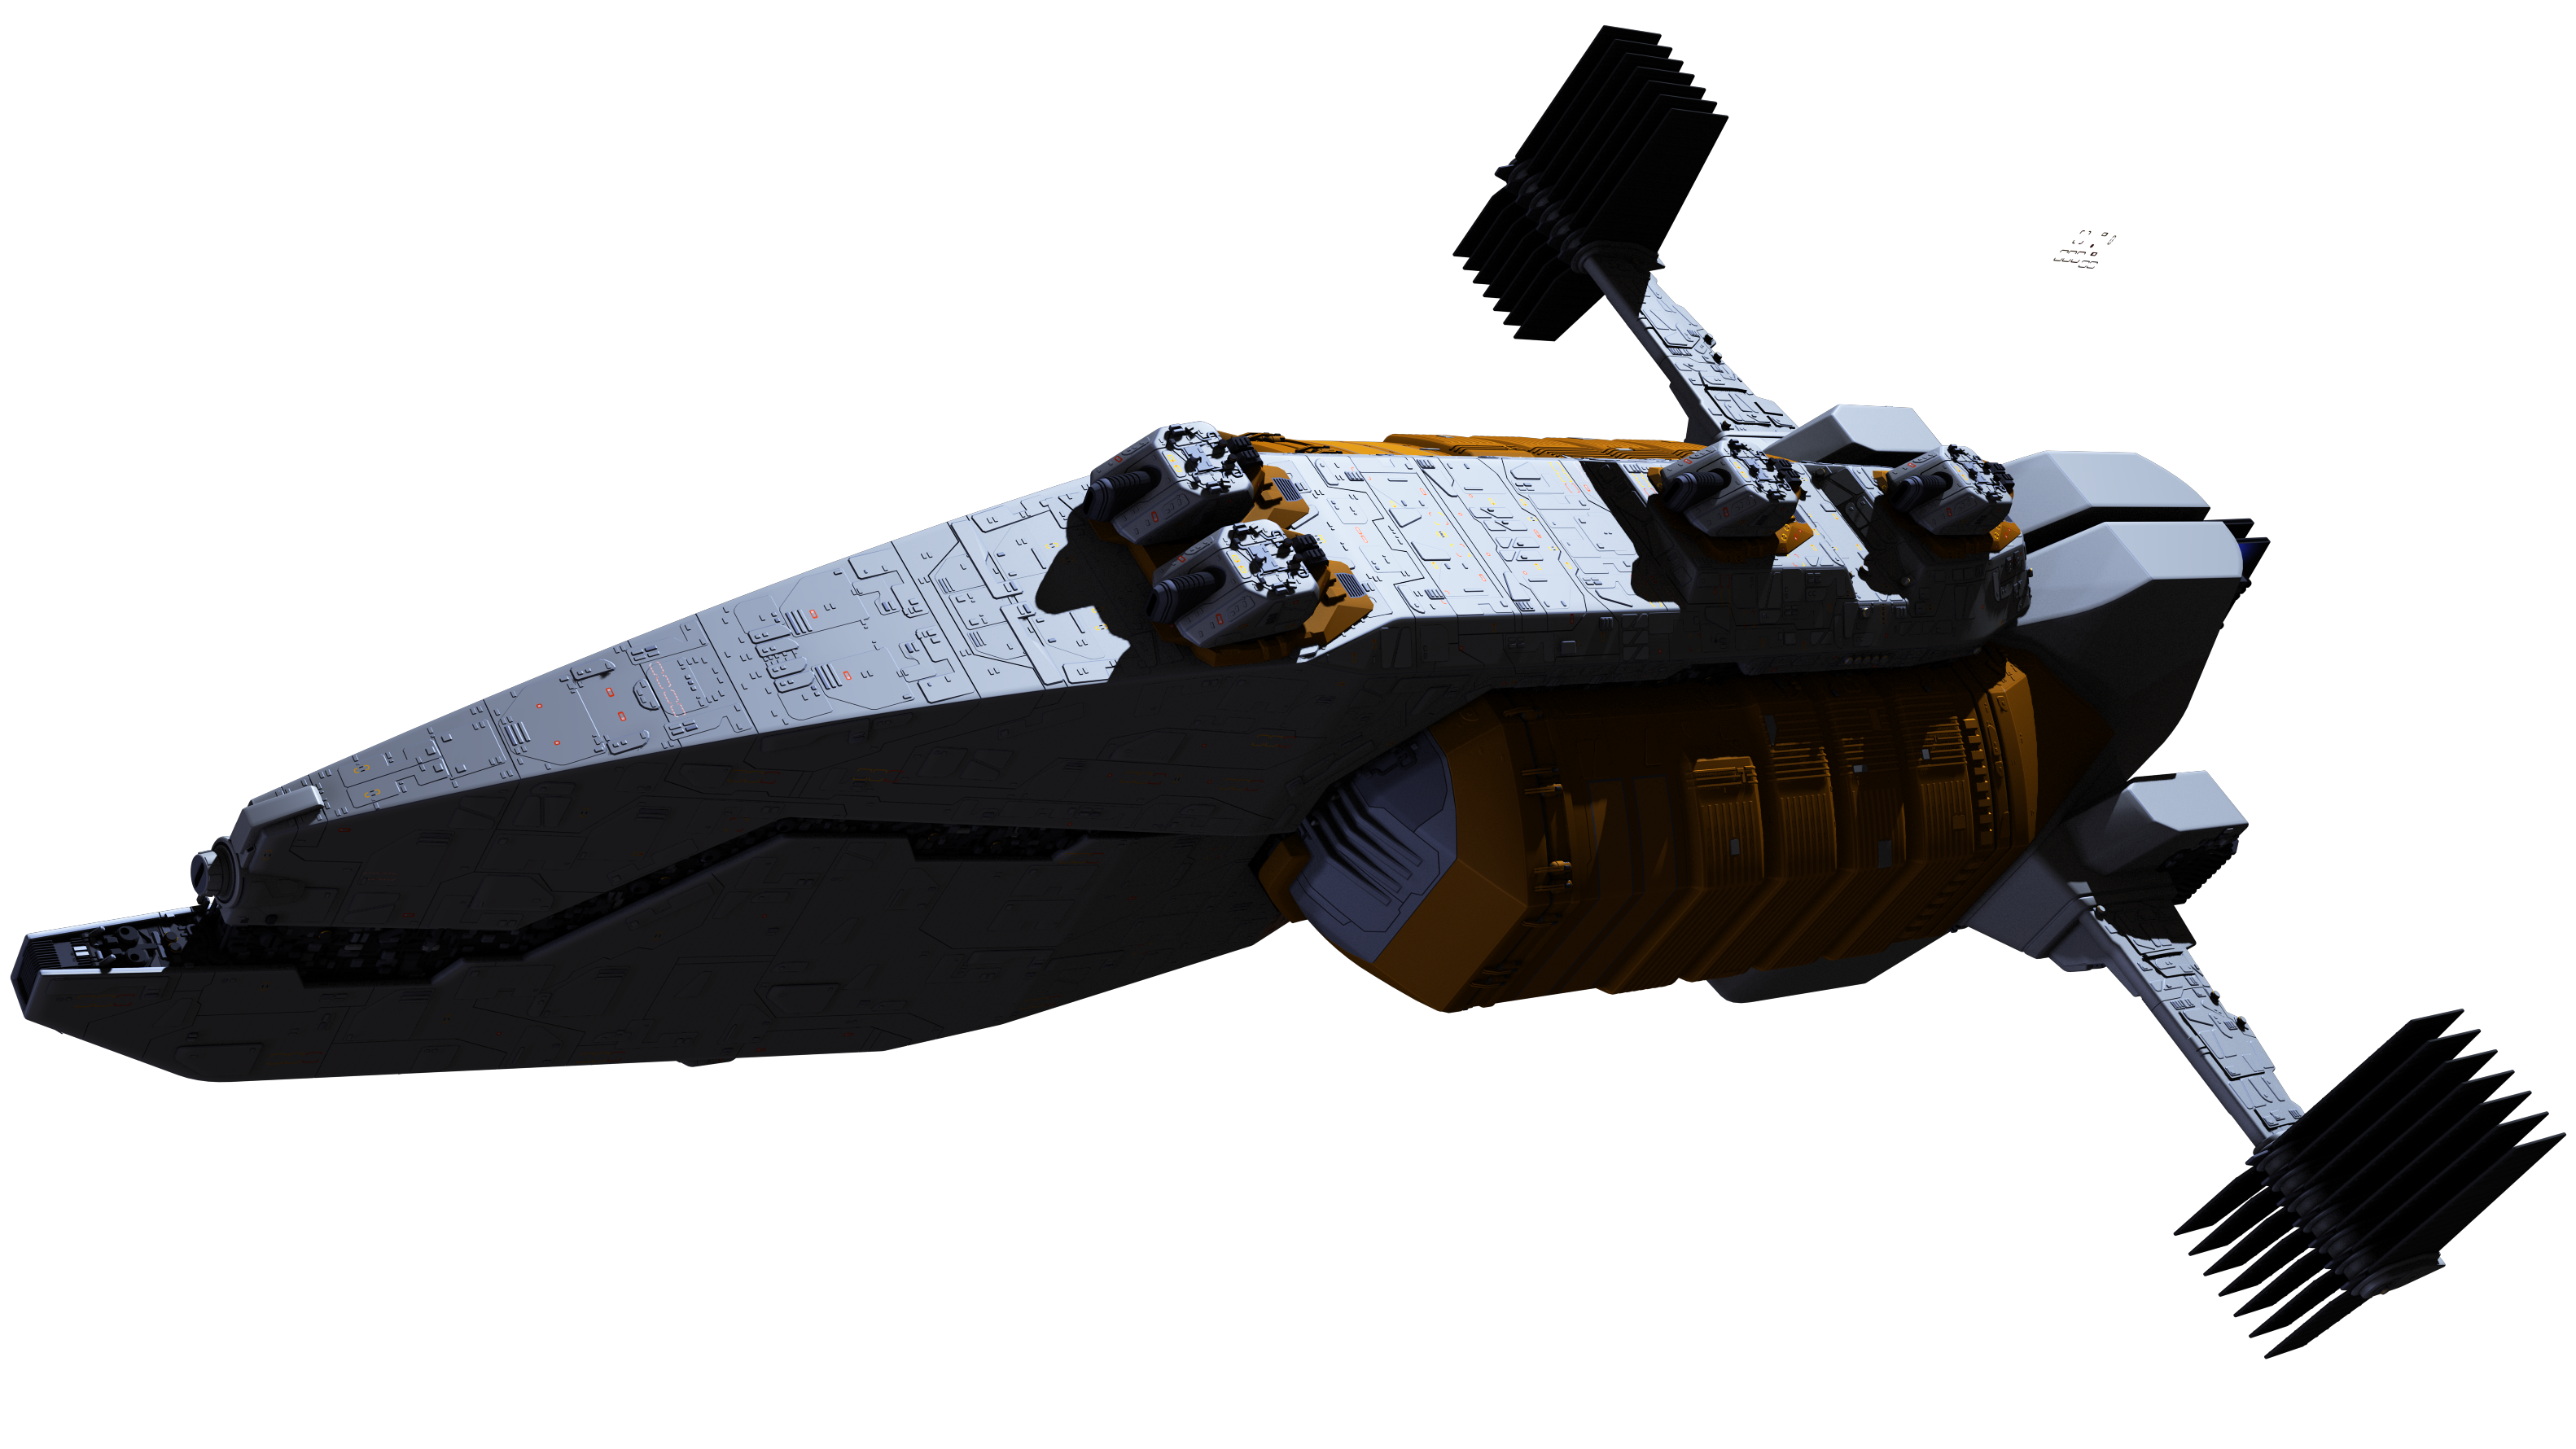 Spacecraft Png image #40893